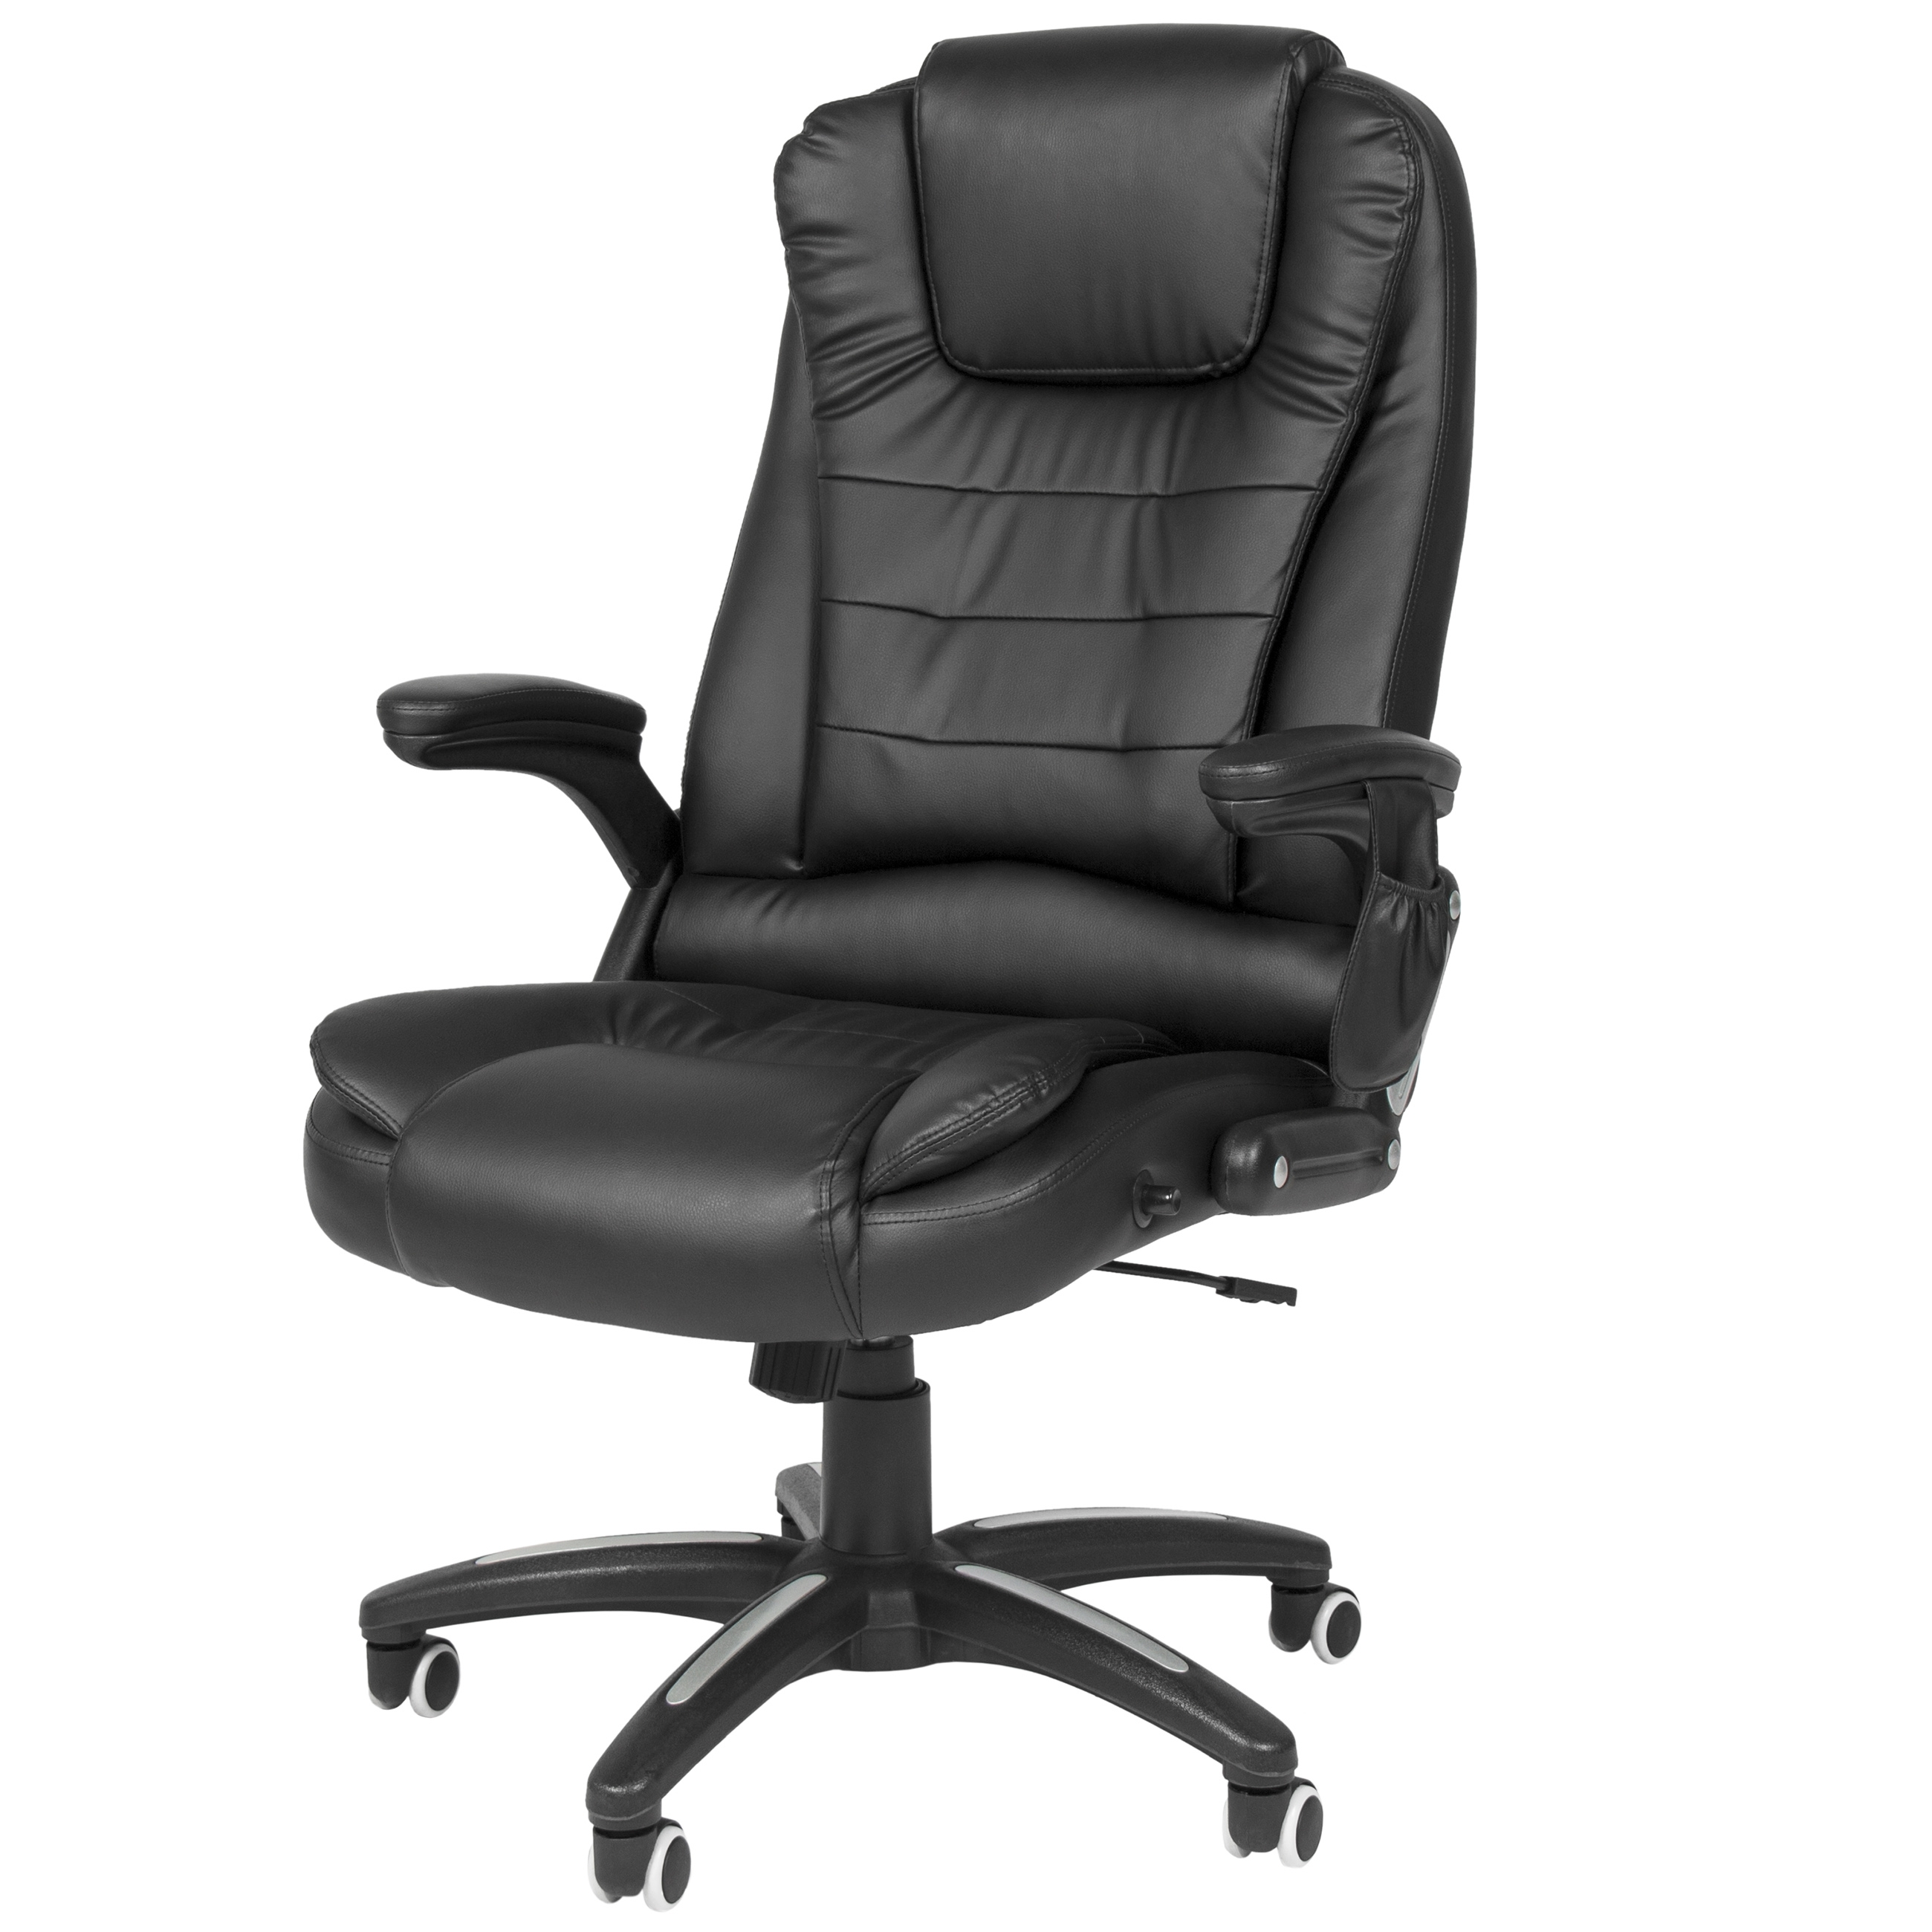 Best Choice Products Executive Ergonomic Heated Vibrating Computer Intended For Newest Leather Executive Office Massage Chairs (View 3 of 20)